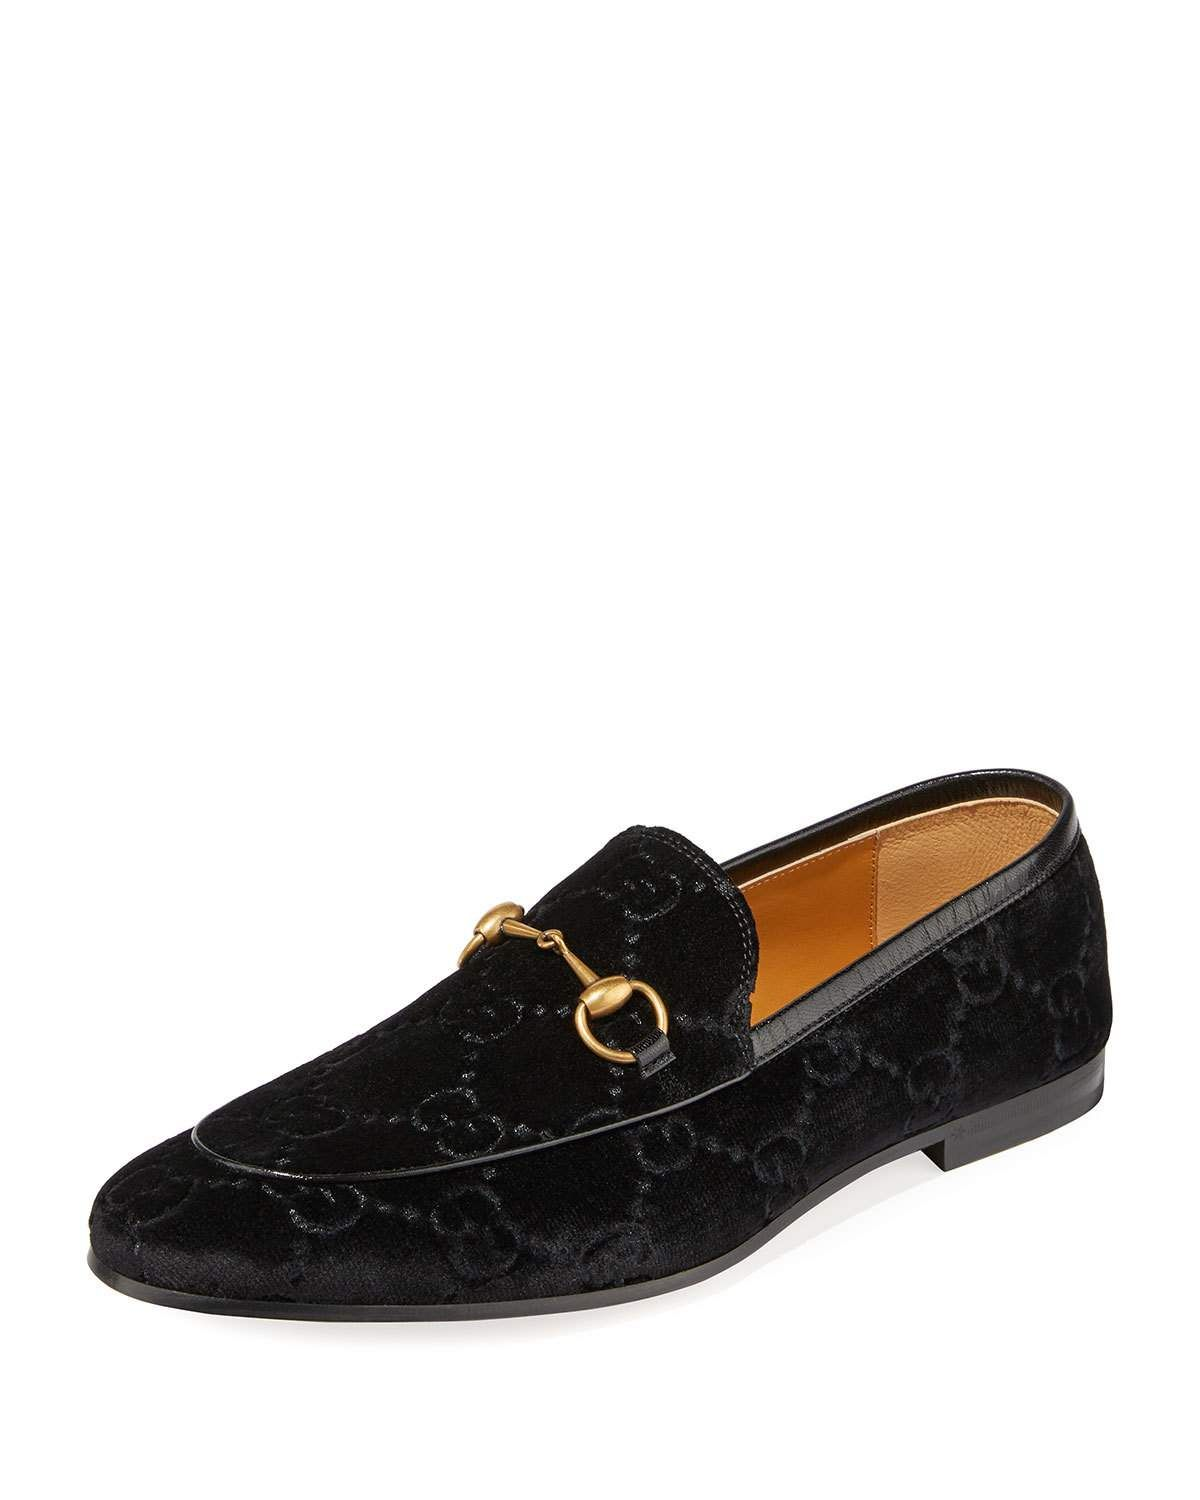 03e45986cee GUCCI MEN S INTERLOCKING-GG VELVET LOAFER.  gucci  shoes